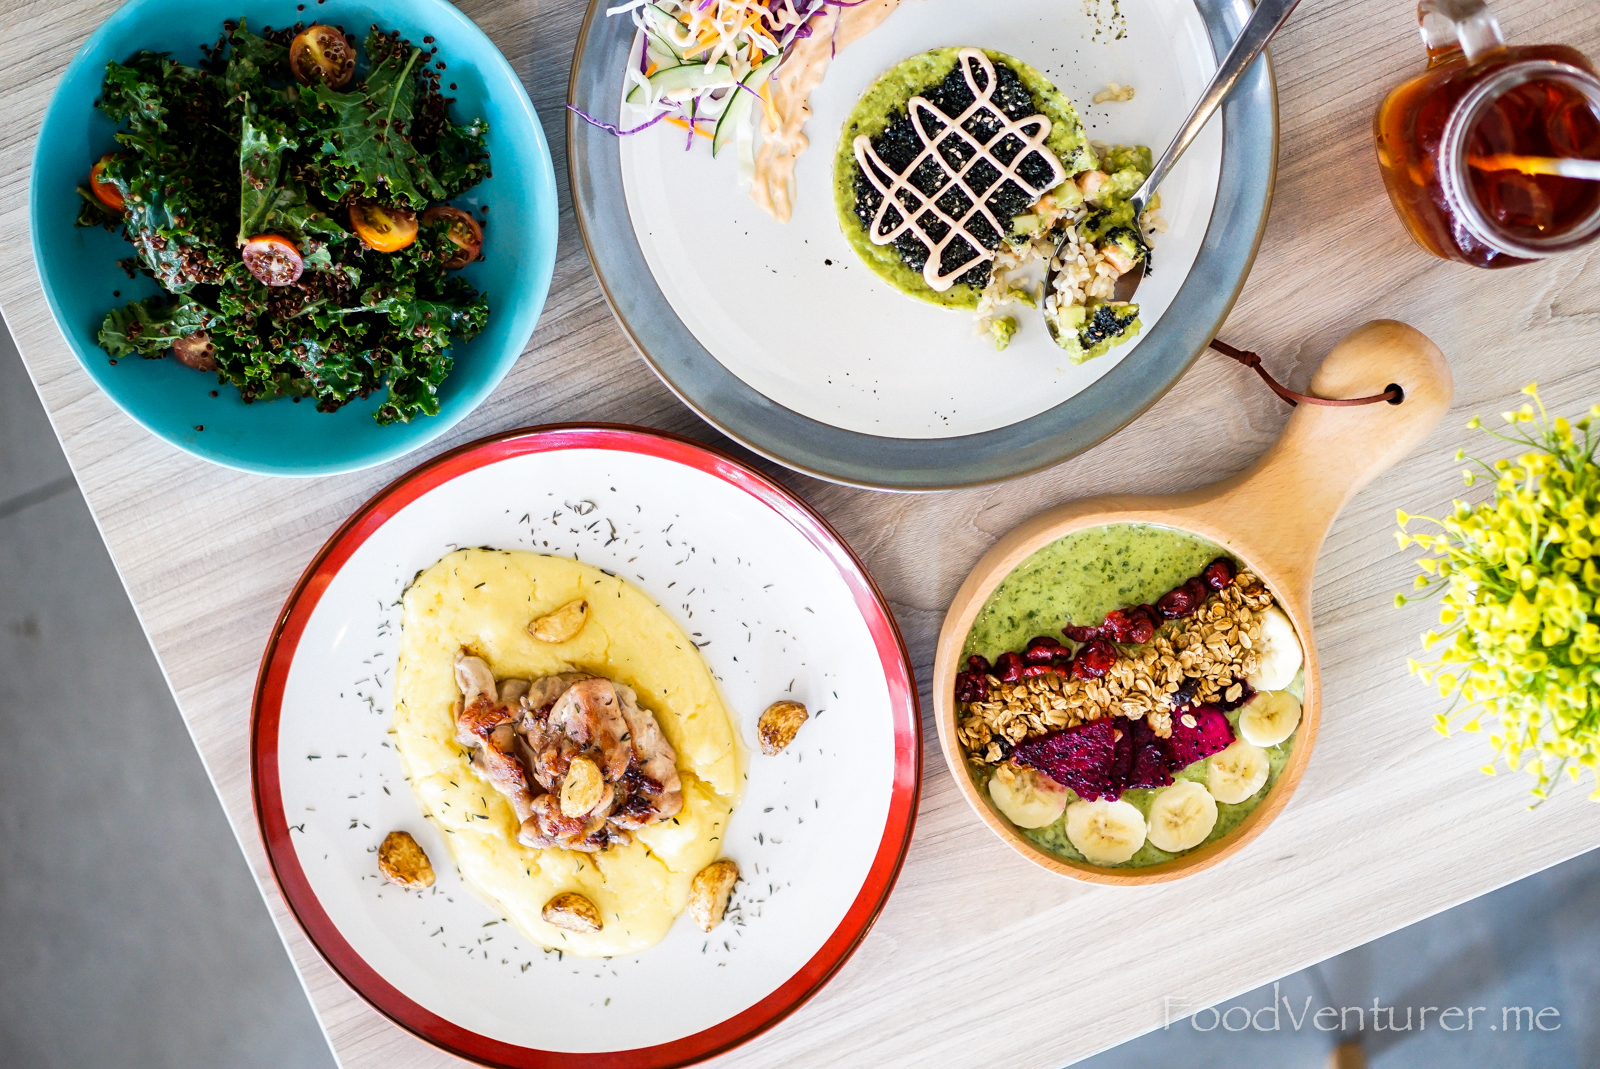 Mintly-Opened Muju Avenue with Healthy Goodness.